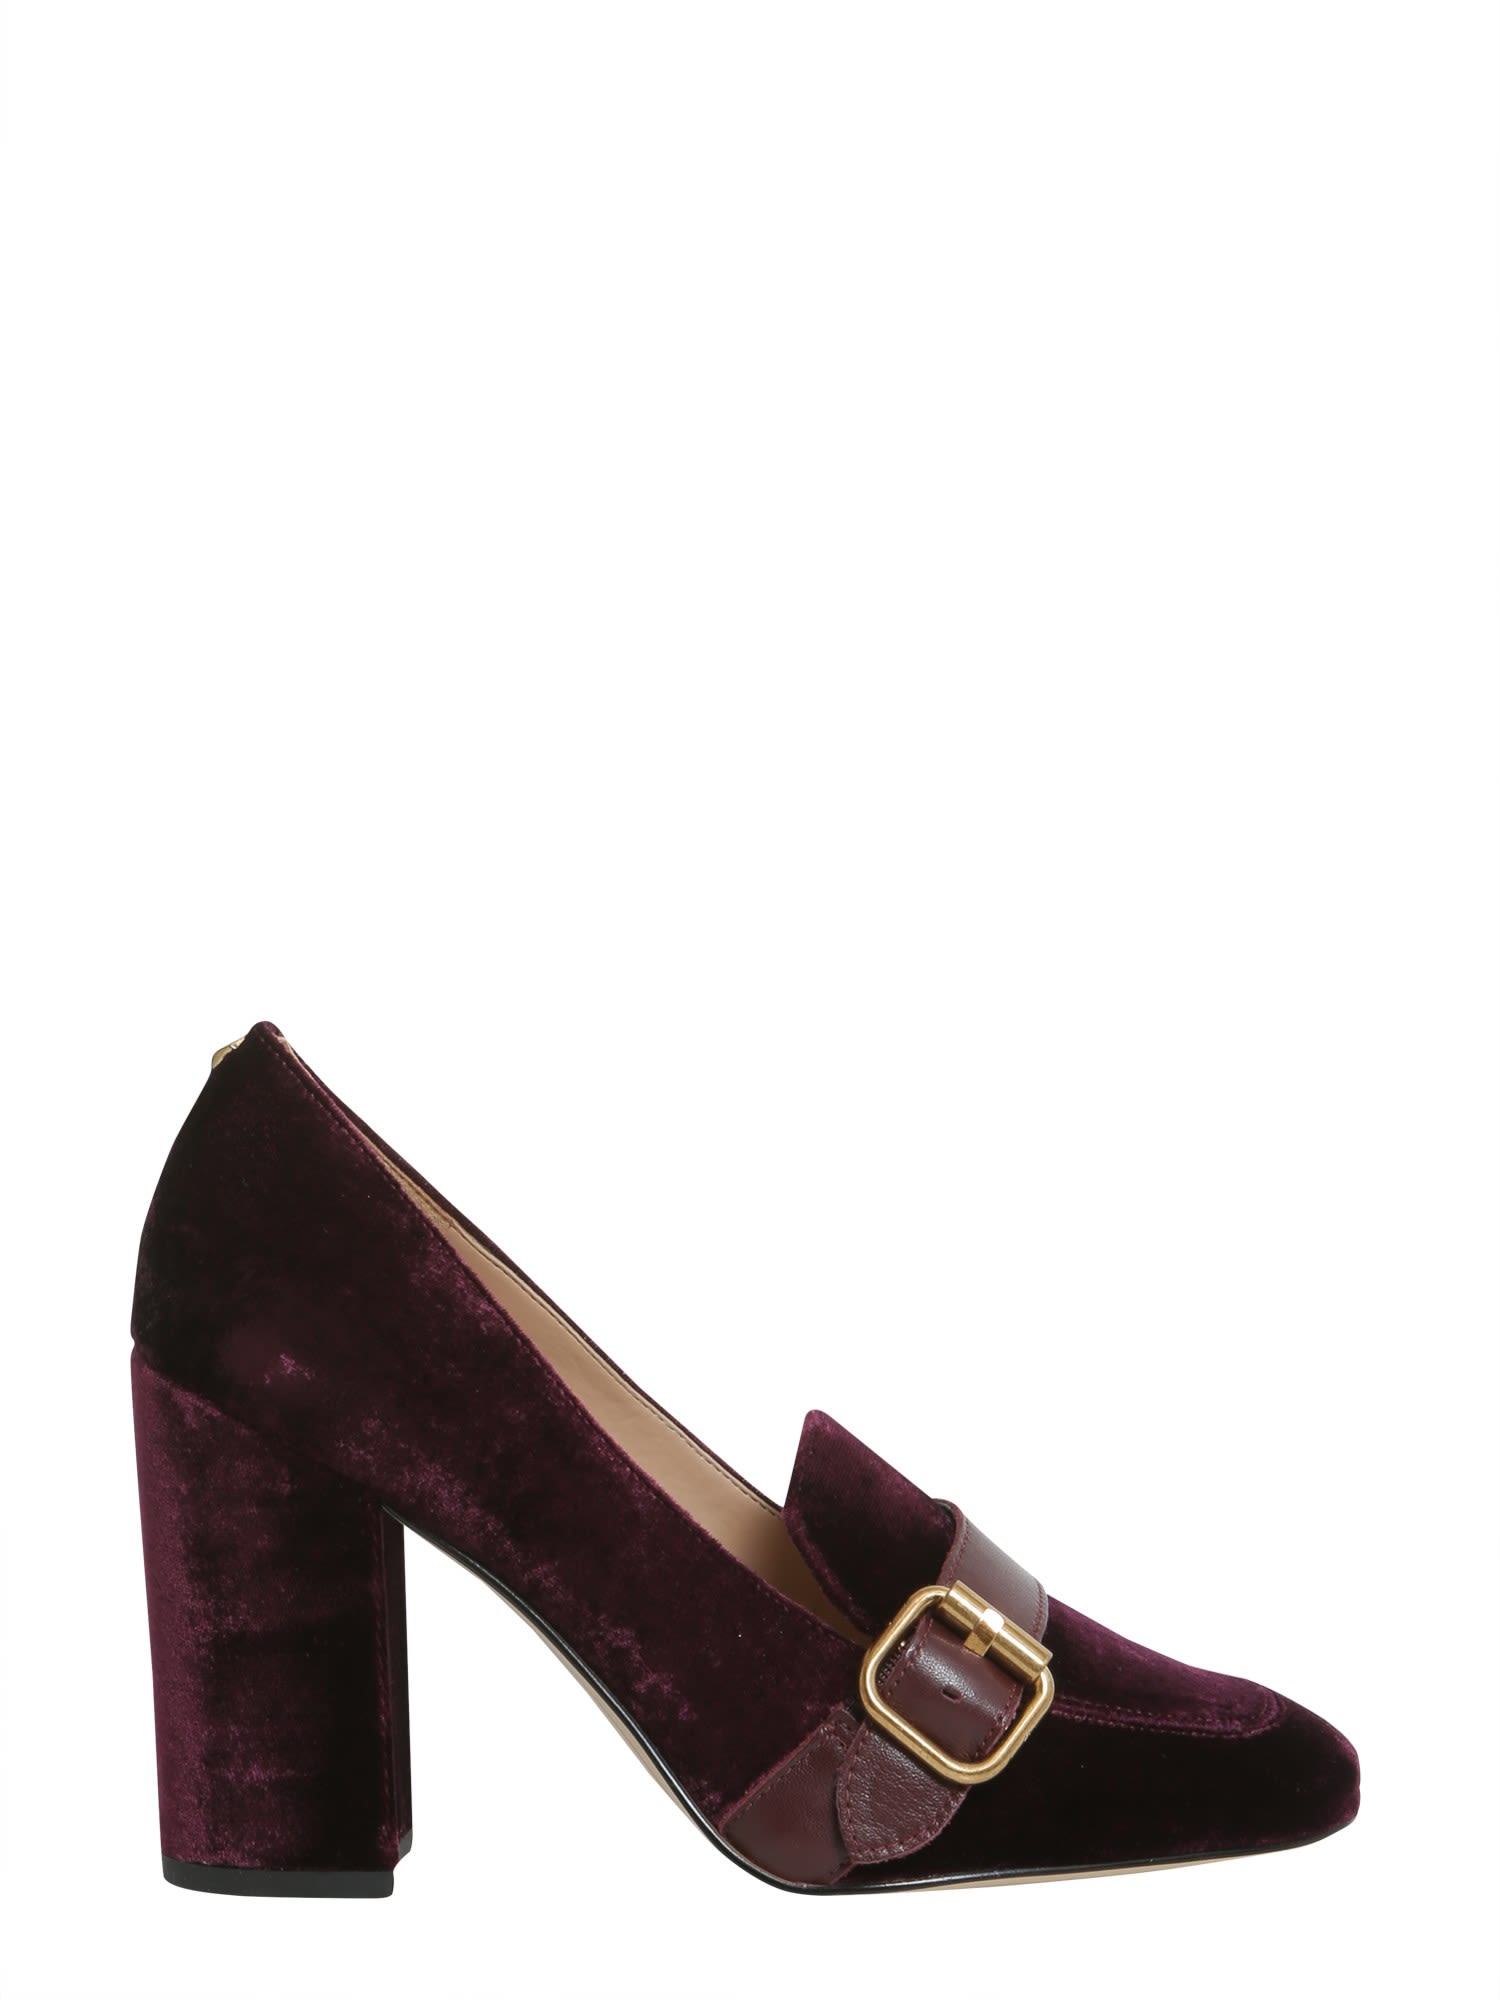 Buy Sam Edelman Ellison Loafers With Heel online, shop Sam Edelman shoes with free shipping